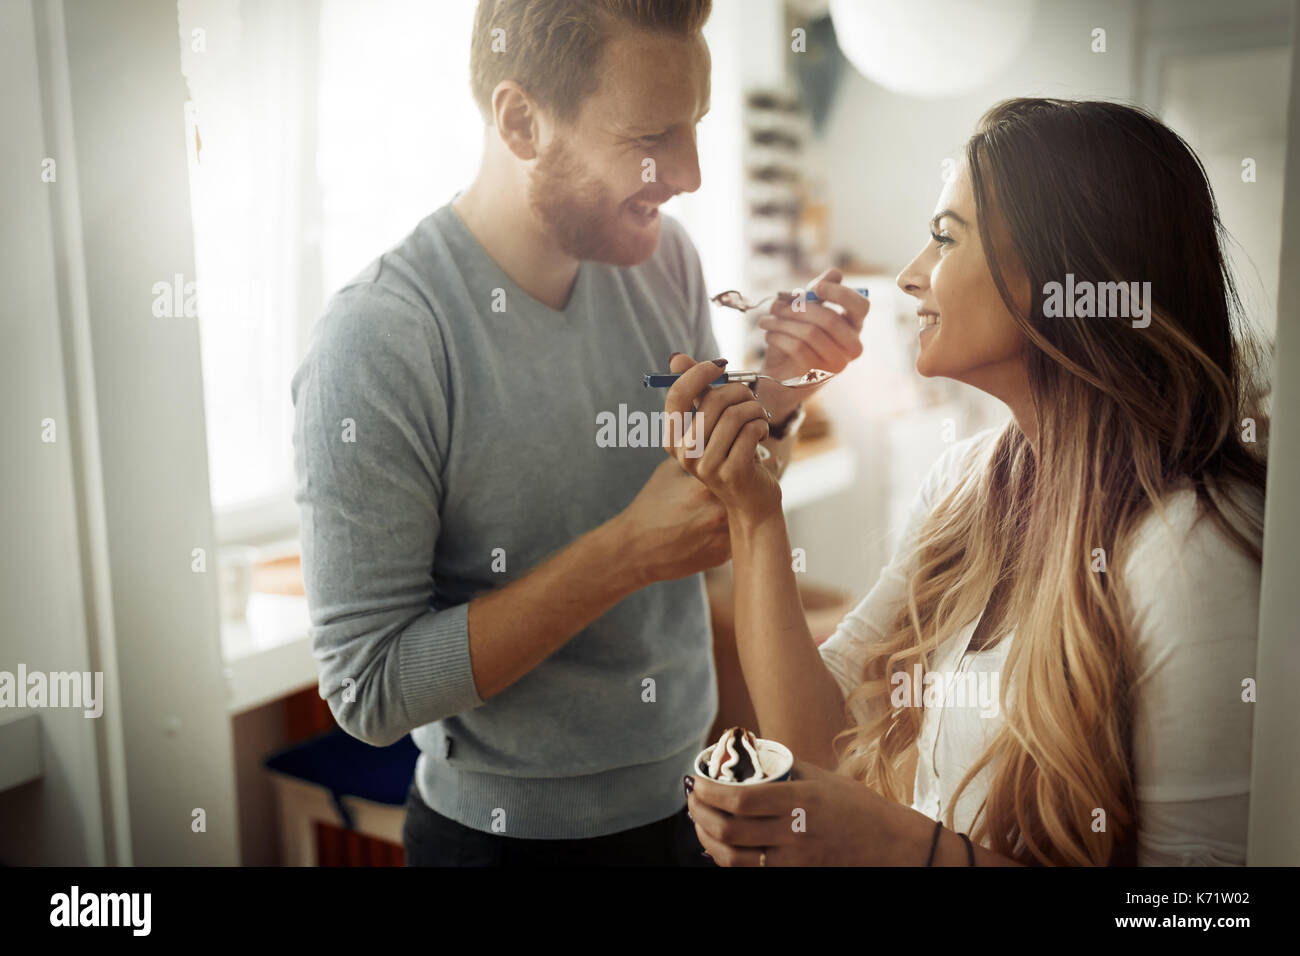 Couple having fun and laughing at home while eating ice cream - Stock Image